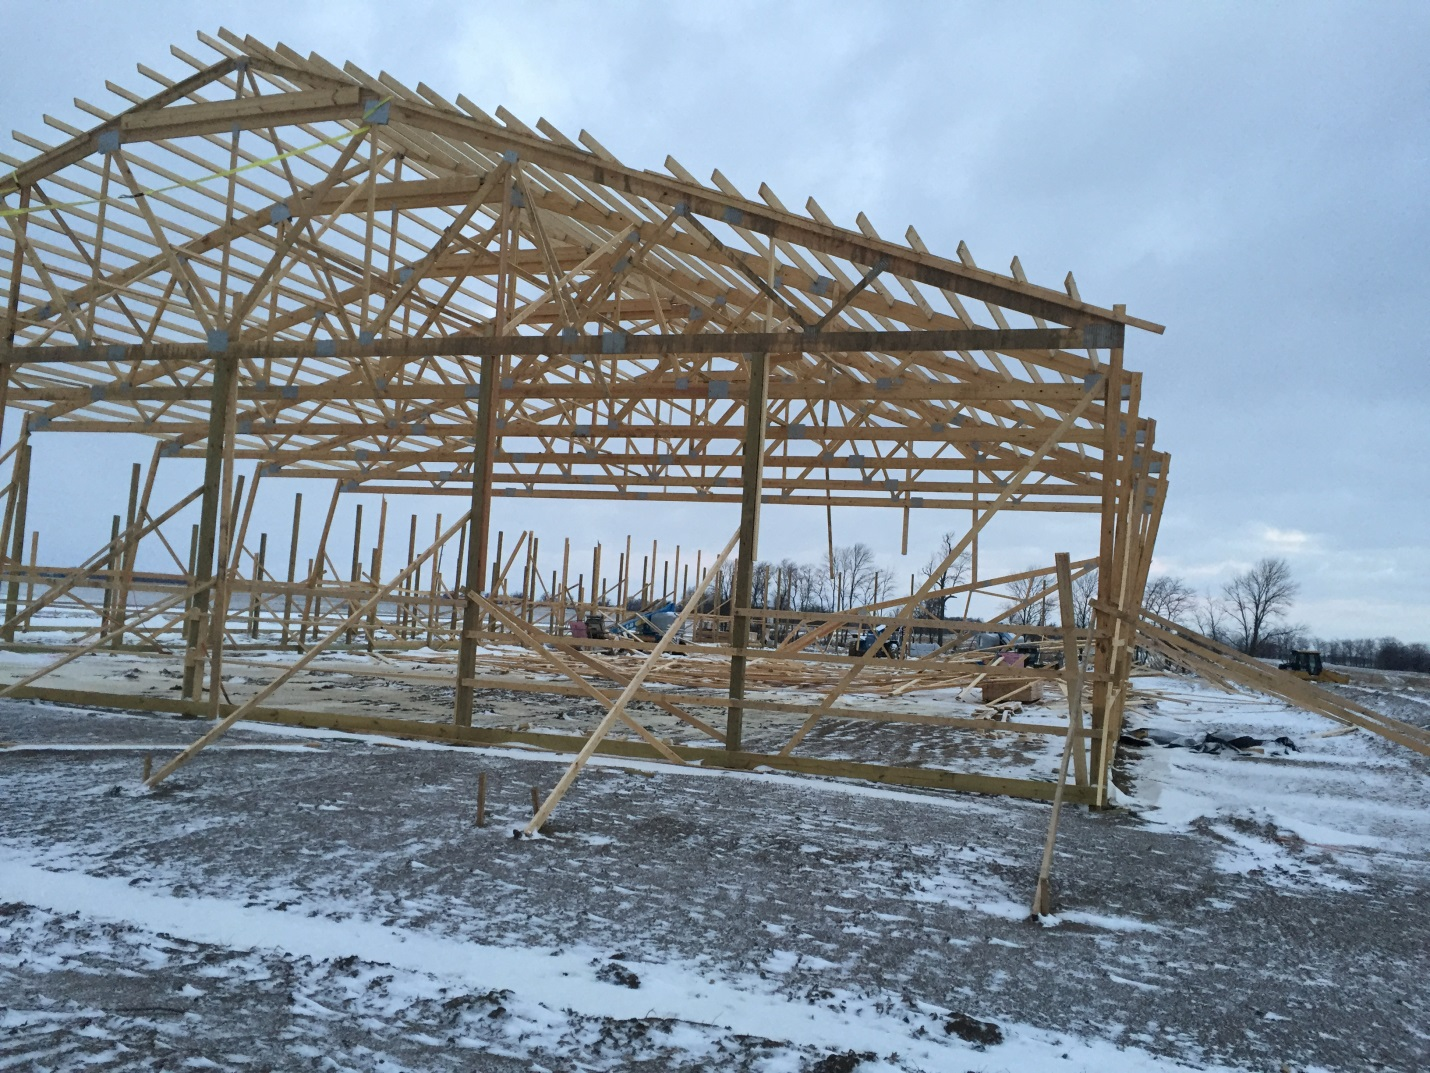 Temporary Bracing to Avoid Under Construction Mishaps